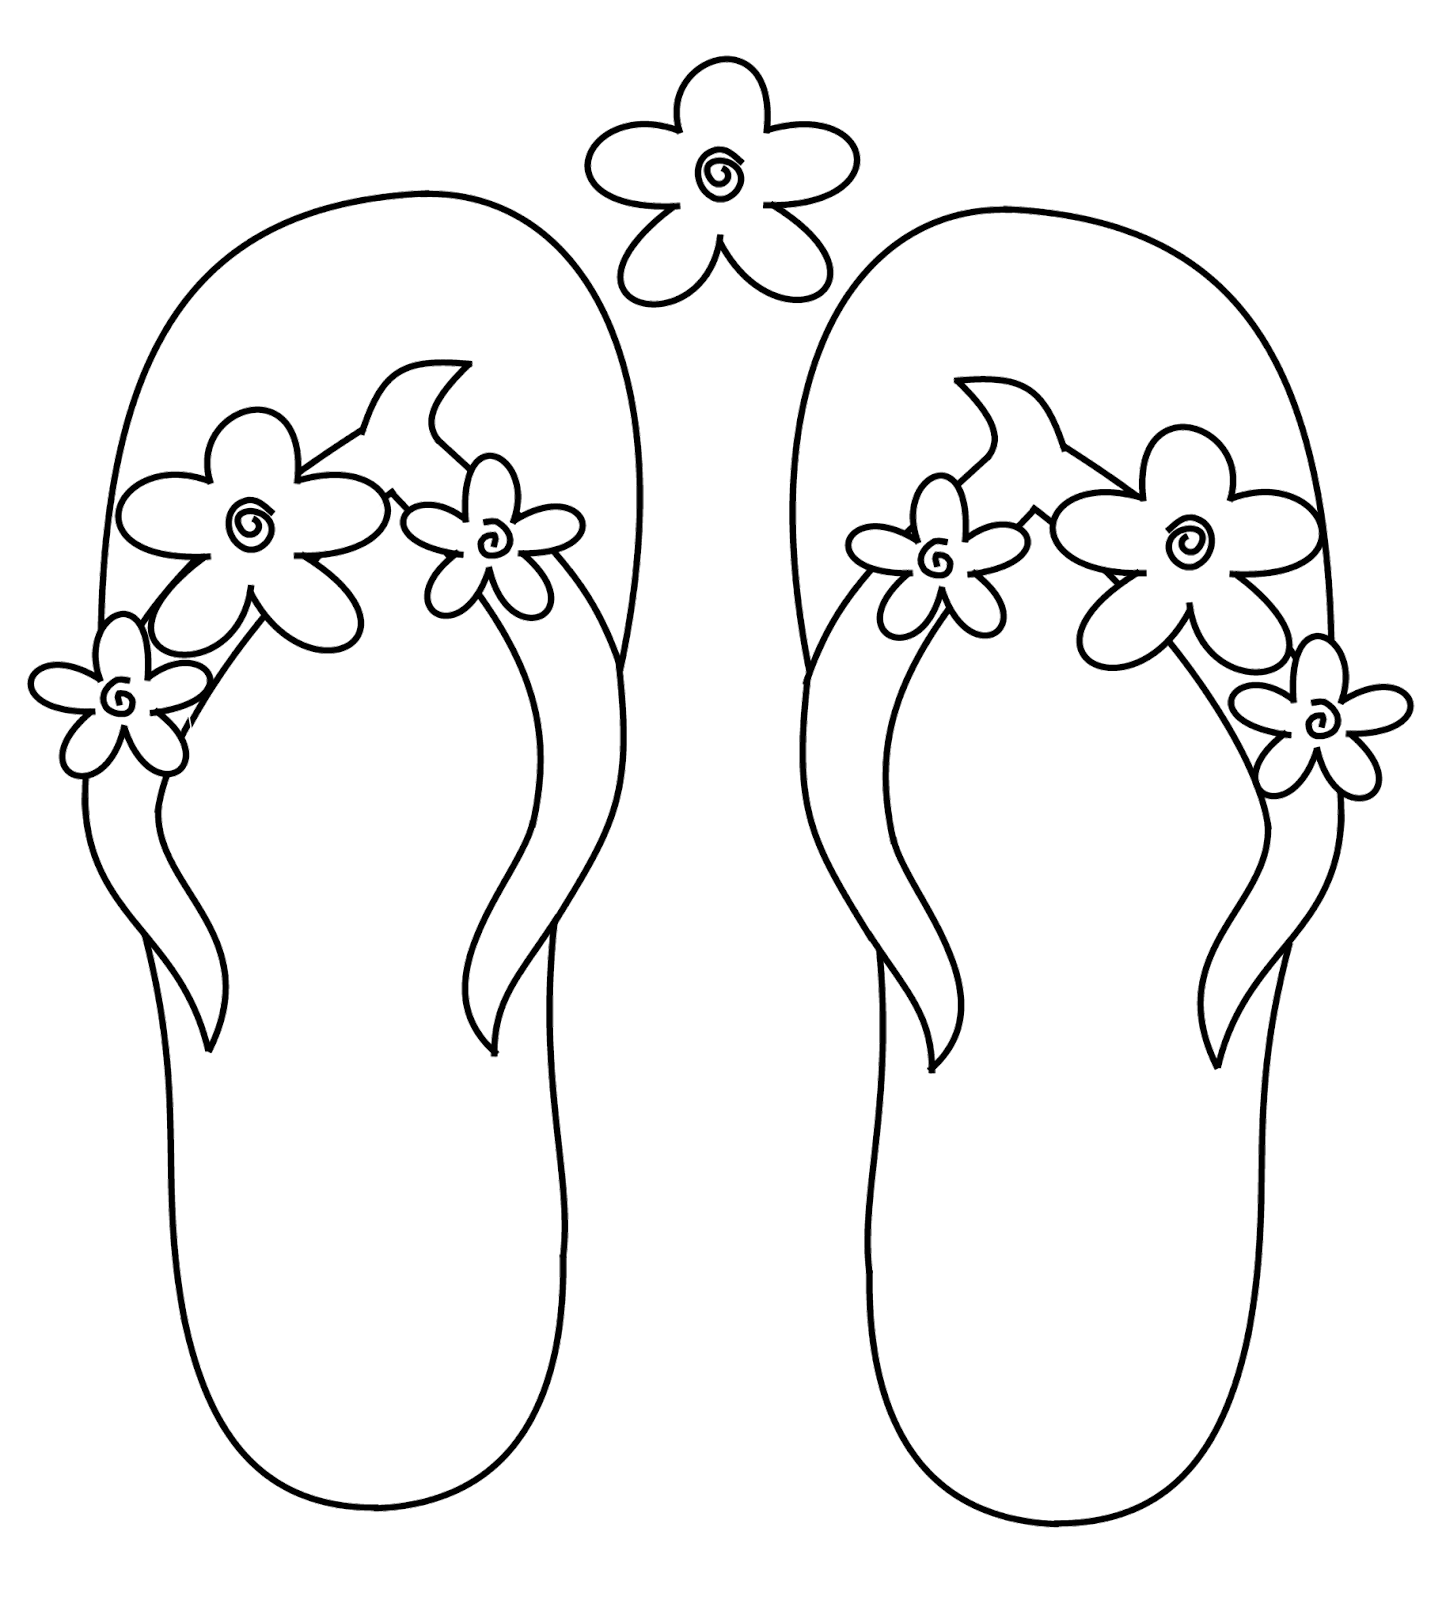 Scribbles Drawing And Coloring Book : Scribbles designs f flower flip flops free